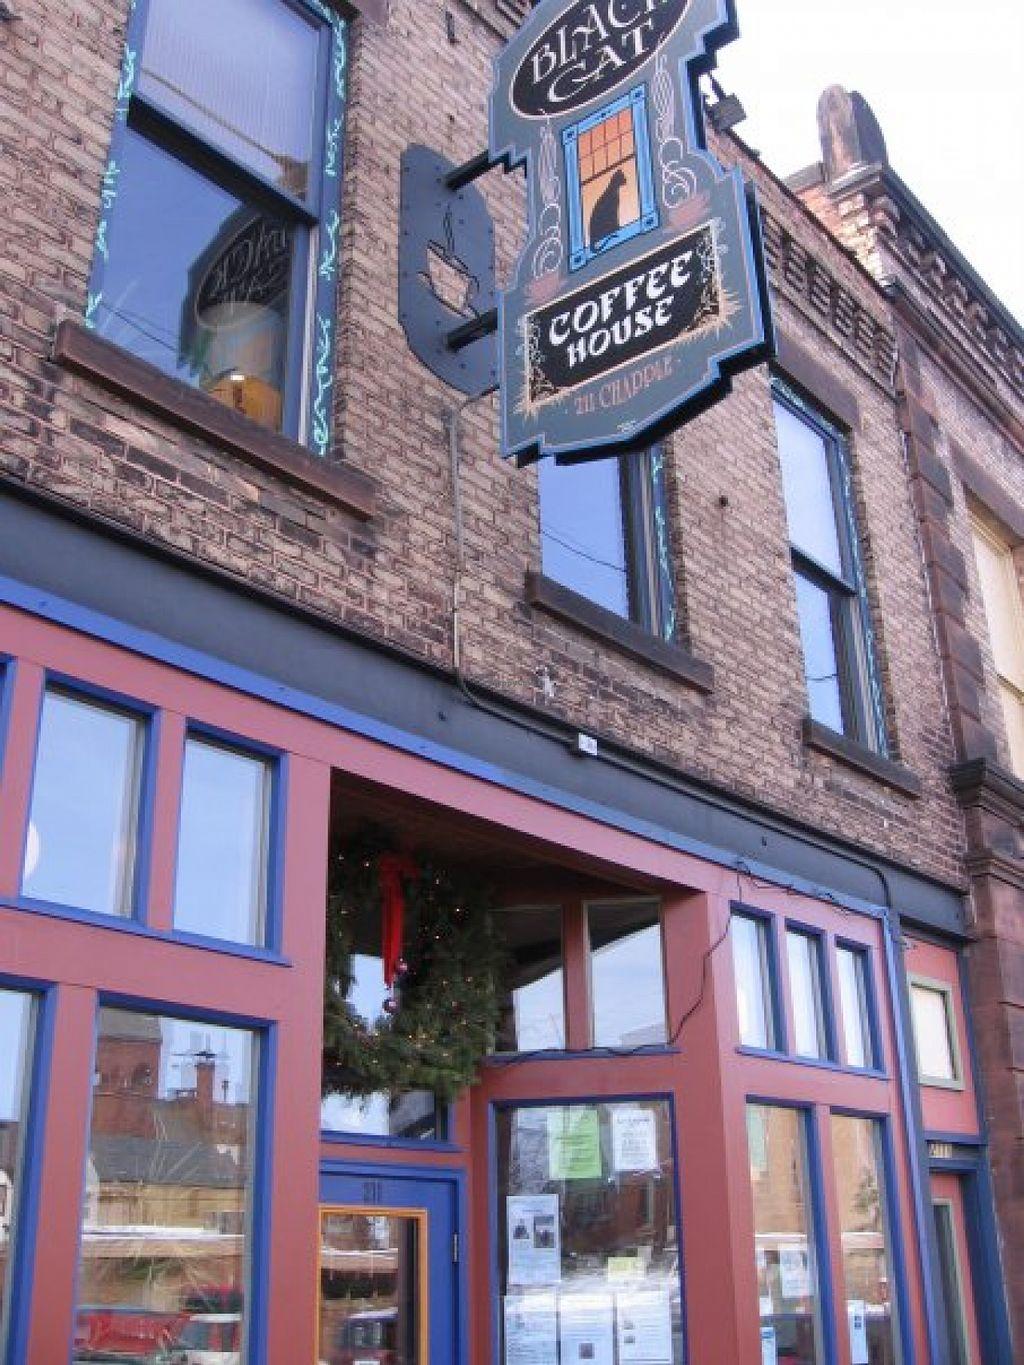 """Photo of Black Cat Coffeehouse  by <a href=""""/members/profile/community"""">community</a> <br/>Black Cat Coffeehouse <br/> August 5, 2015  - <a href='/contact/abuse/image/61272/112476'>Report</a>"""